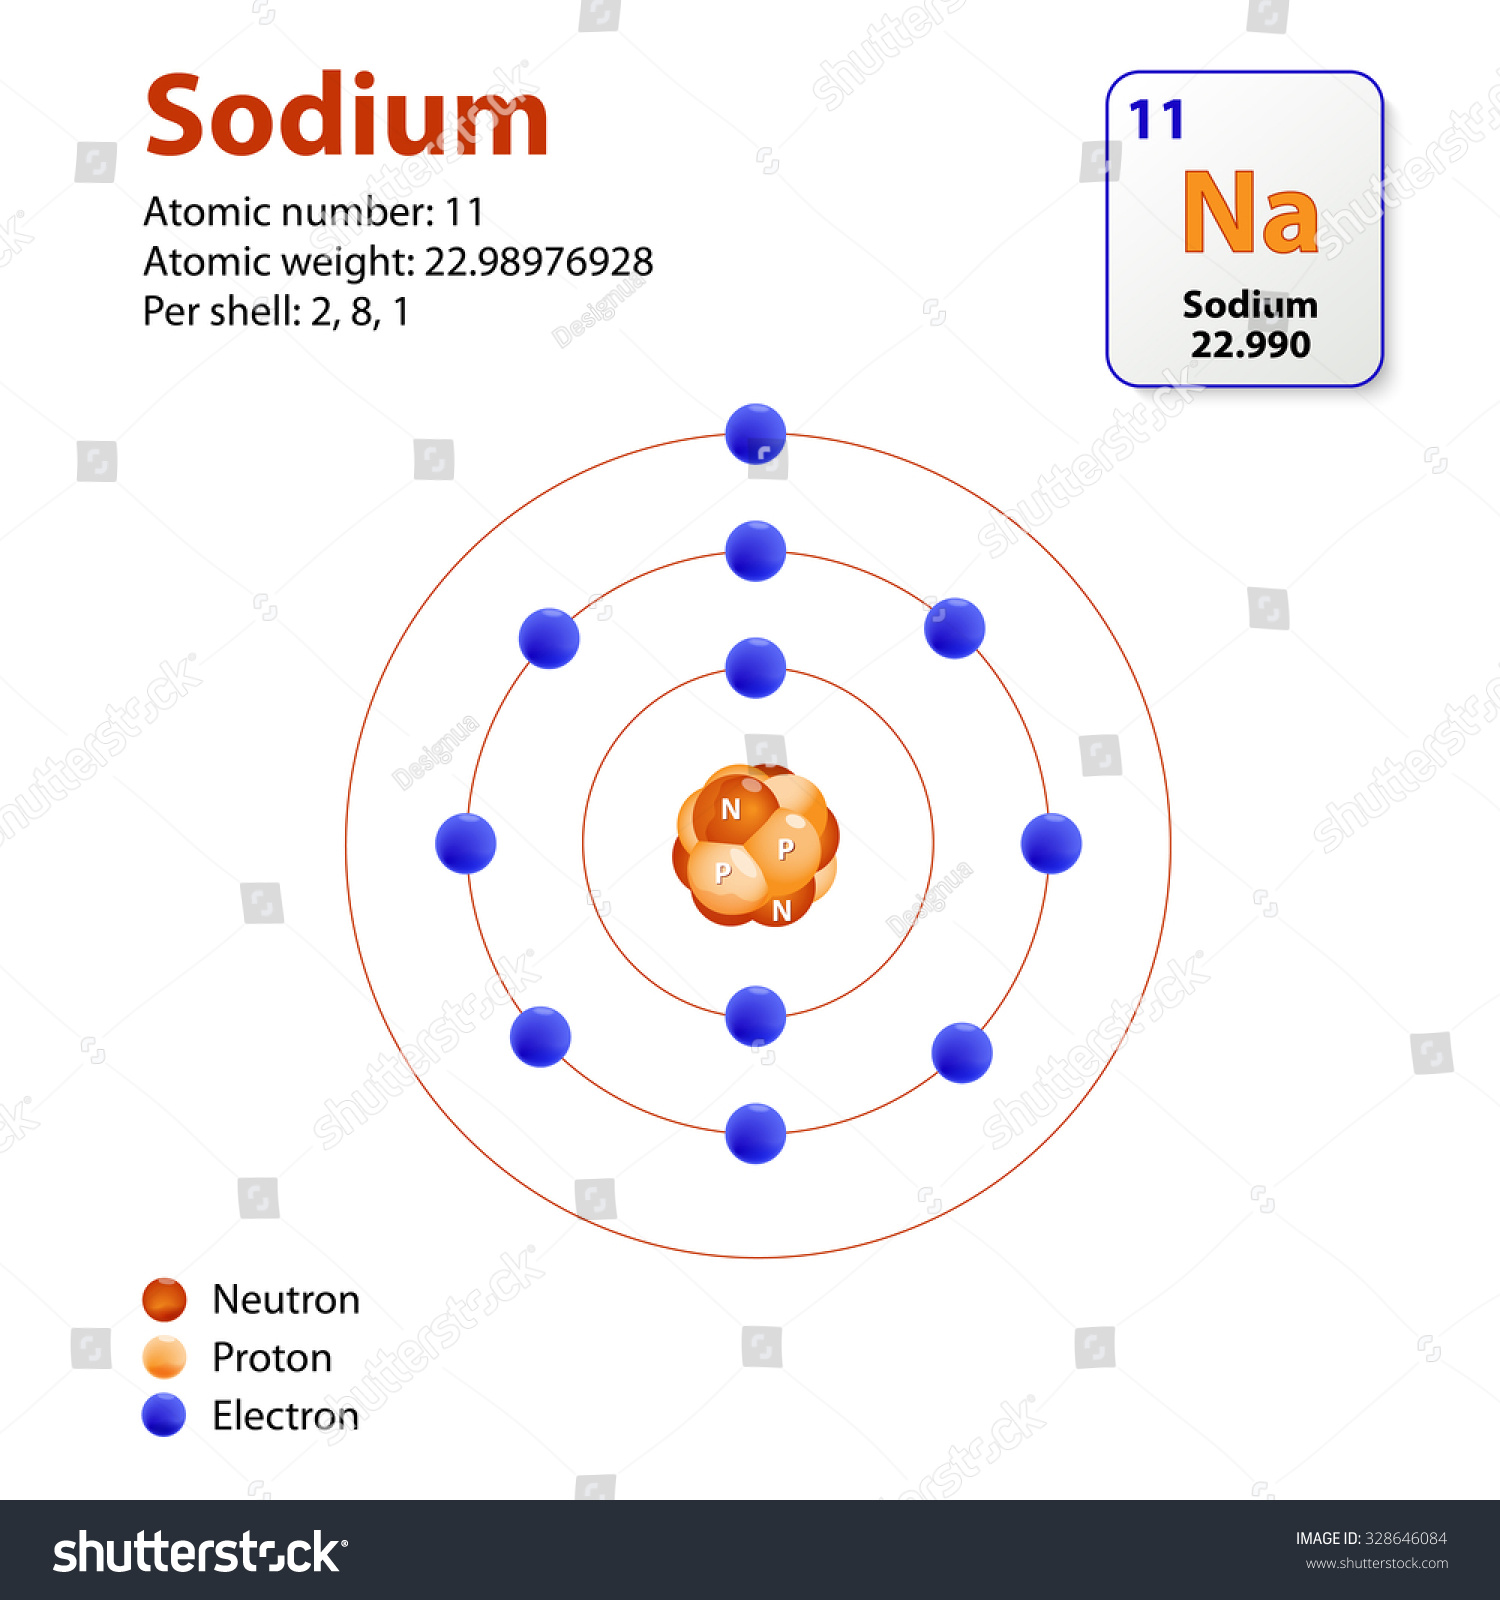 Atom Sodium This Diagram Shows The Electron Shell